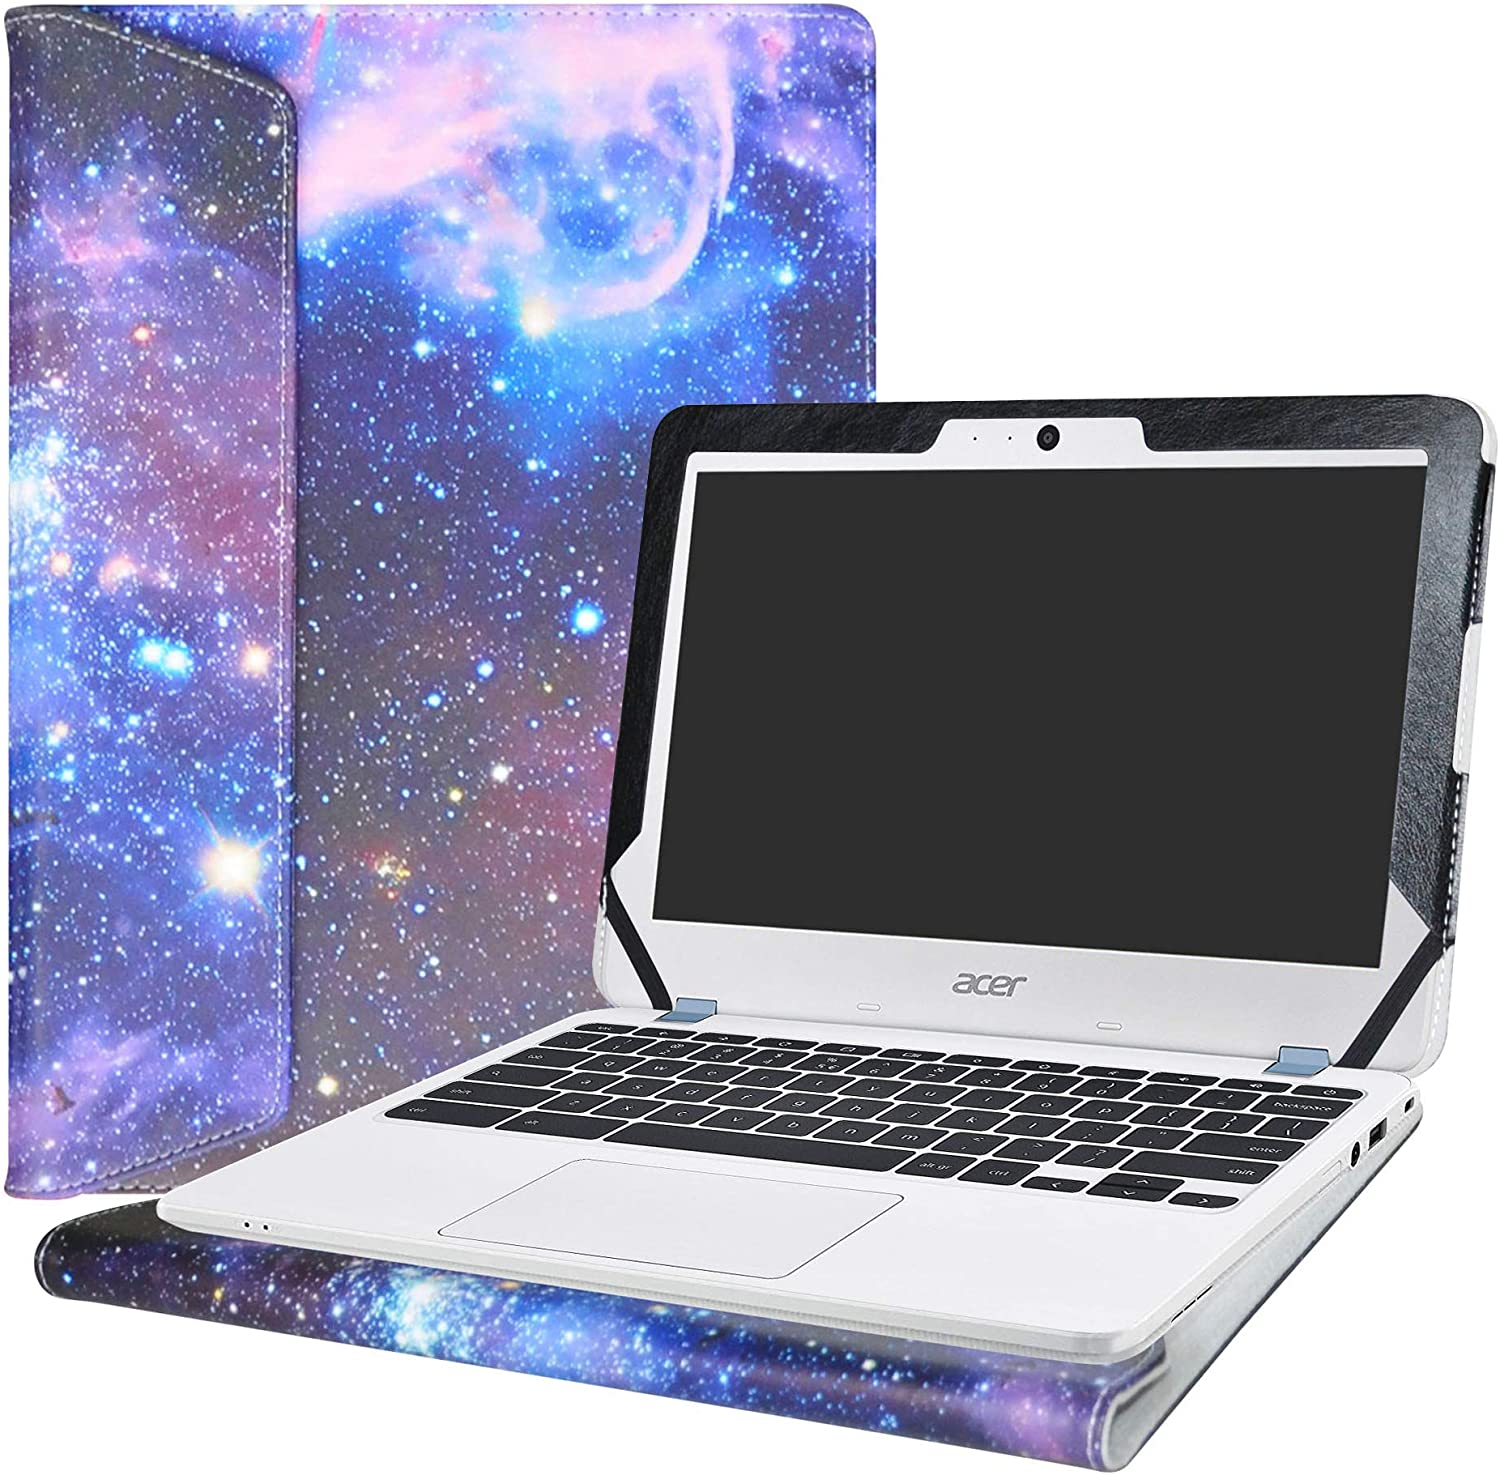 """Alapmk Protective Case Cover for 11.6"""" Acer Chromebook 11 C771T C771 & Chromebook Spin 11 CP311-1HN R751T CP511-1HN R751TN & Chromebook 11 N7 C731T C731 CB311-7H CB311-7HT Series Laptop,Galaxy"""